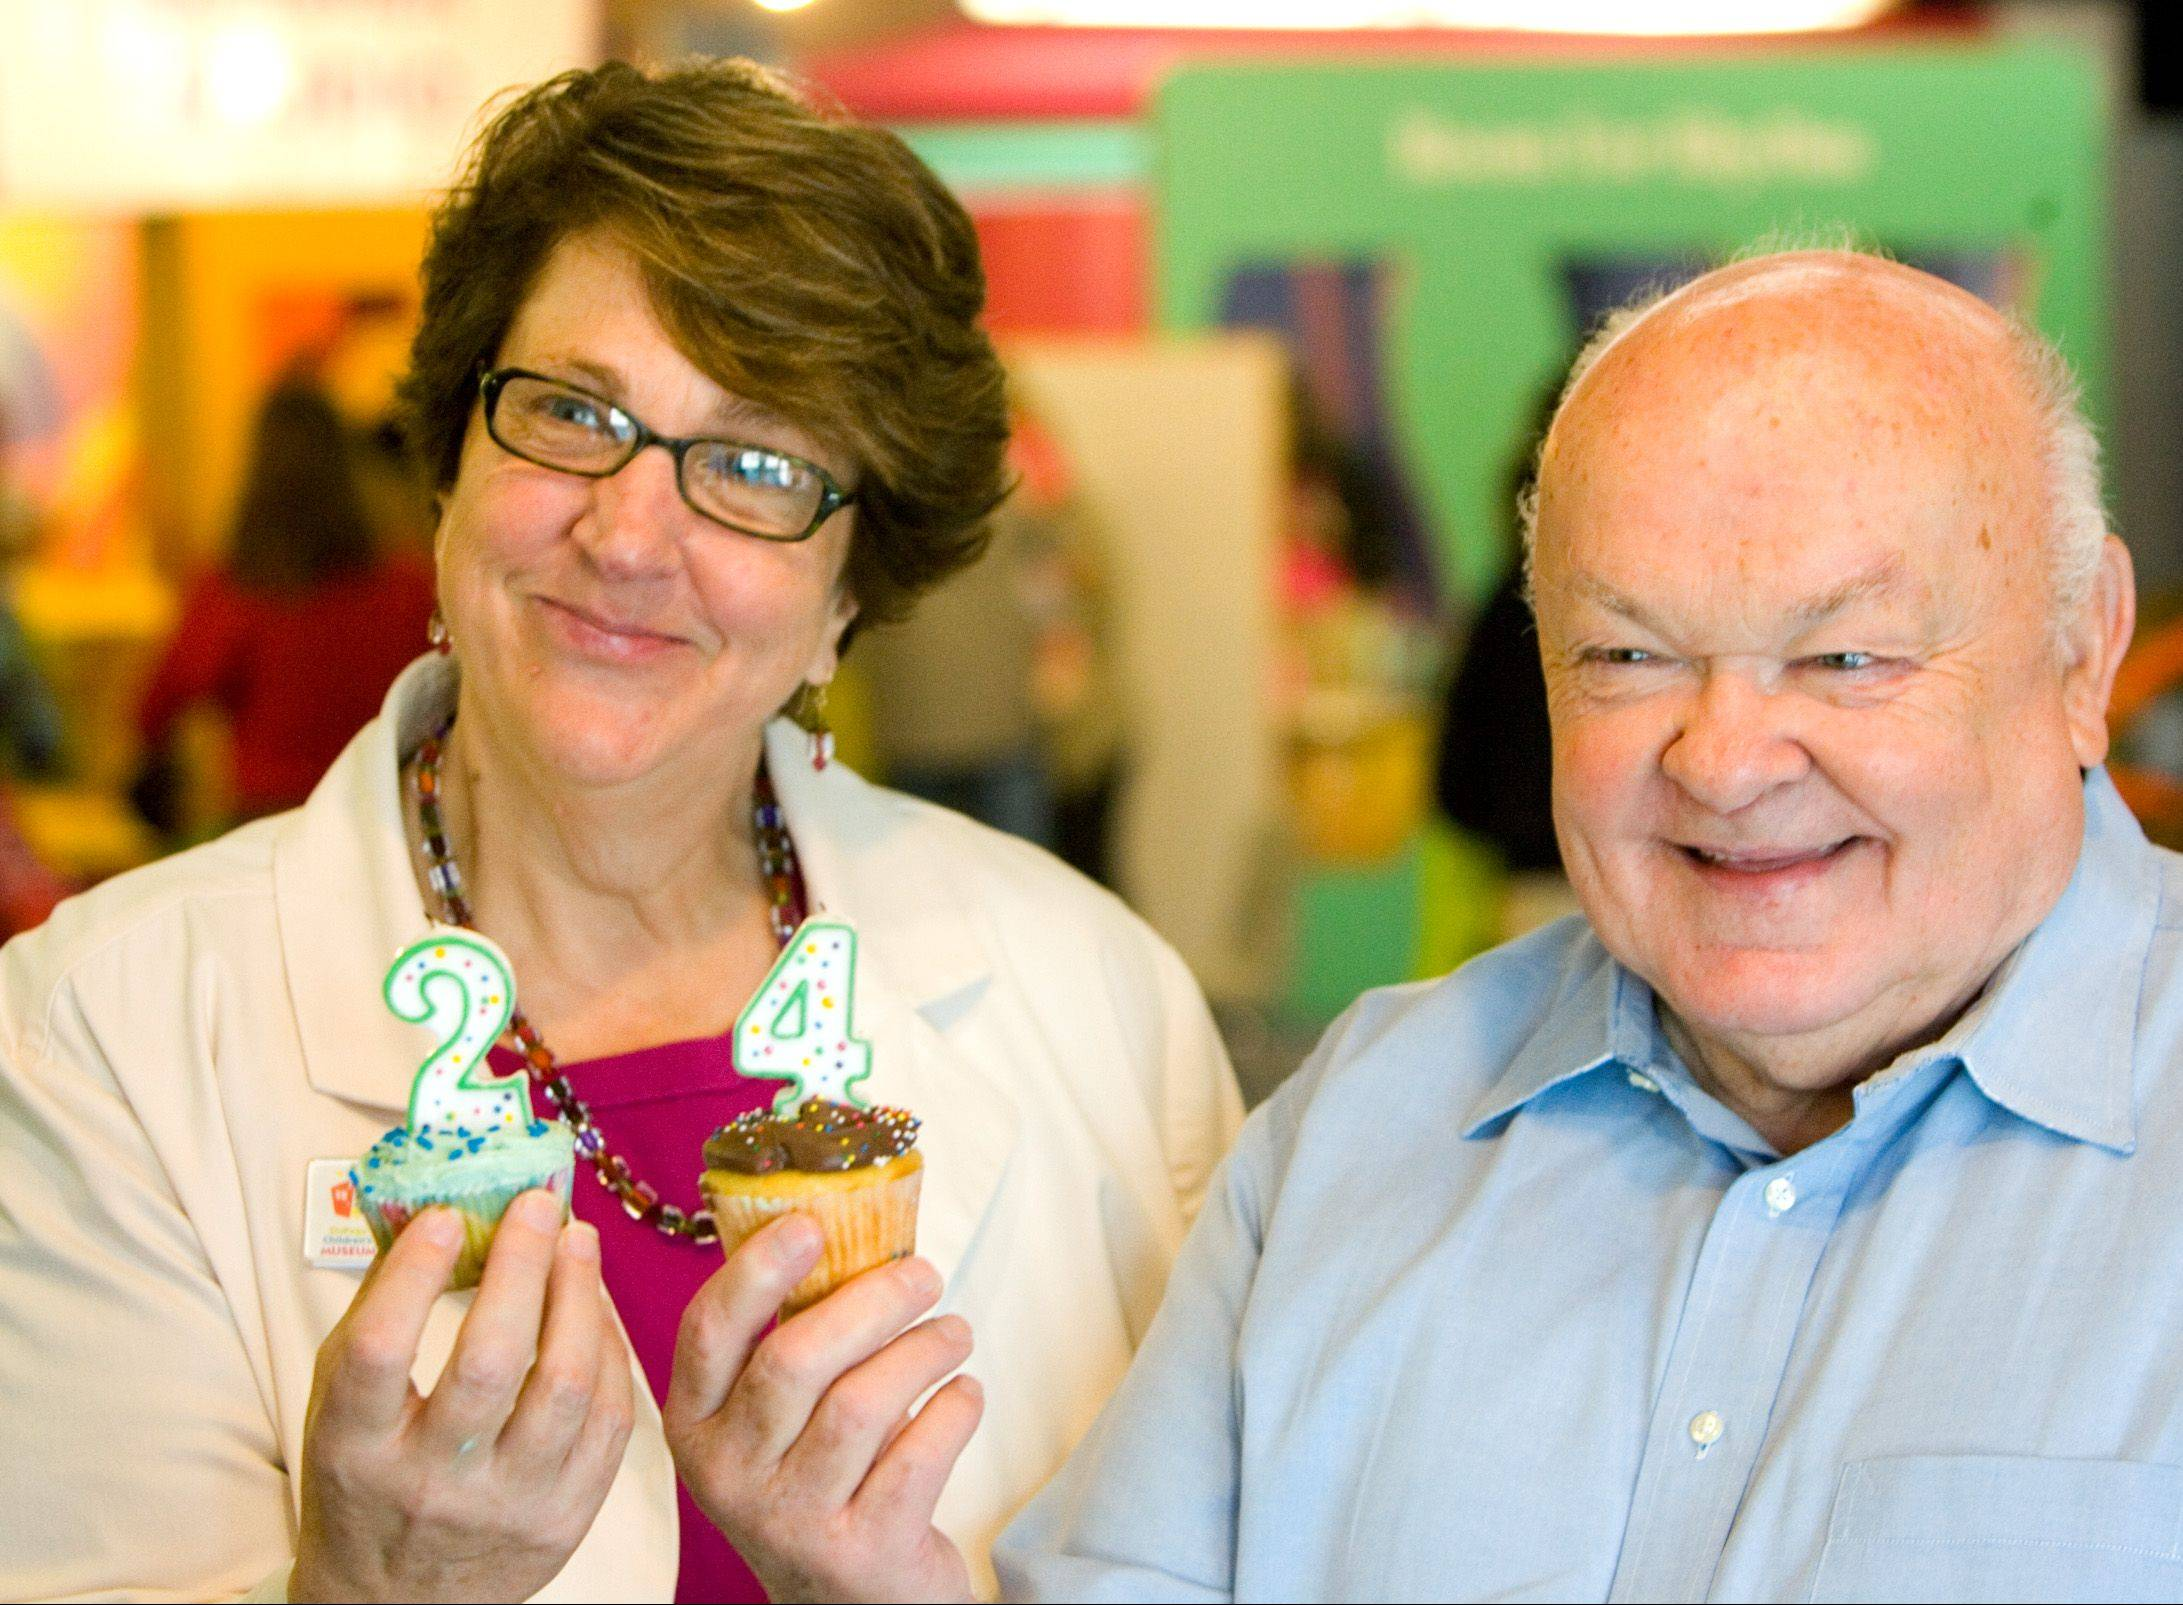 Susan Broad, left, the longtime president and CEO of the DuPage Children's Museum, celebrates one of the facility's anniversaries with Mayor George Pradel. Broad is stepping down at the end of January after more than 22 years at the helm of the museum that attracts more than 300,000 visitors a year.